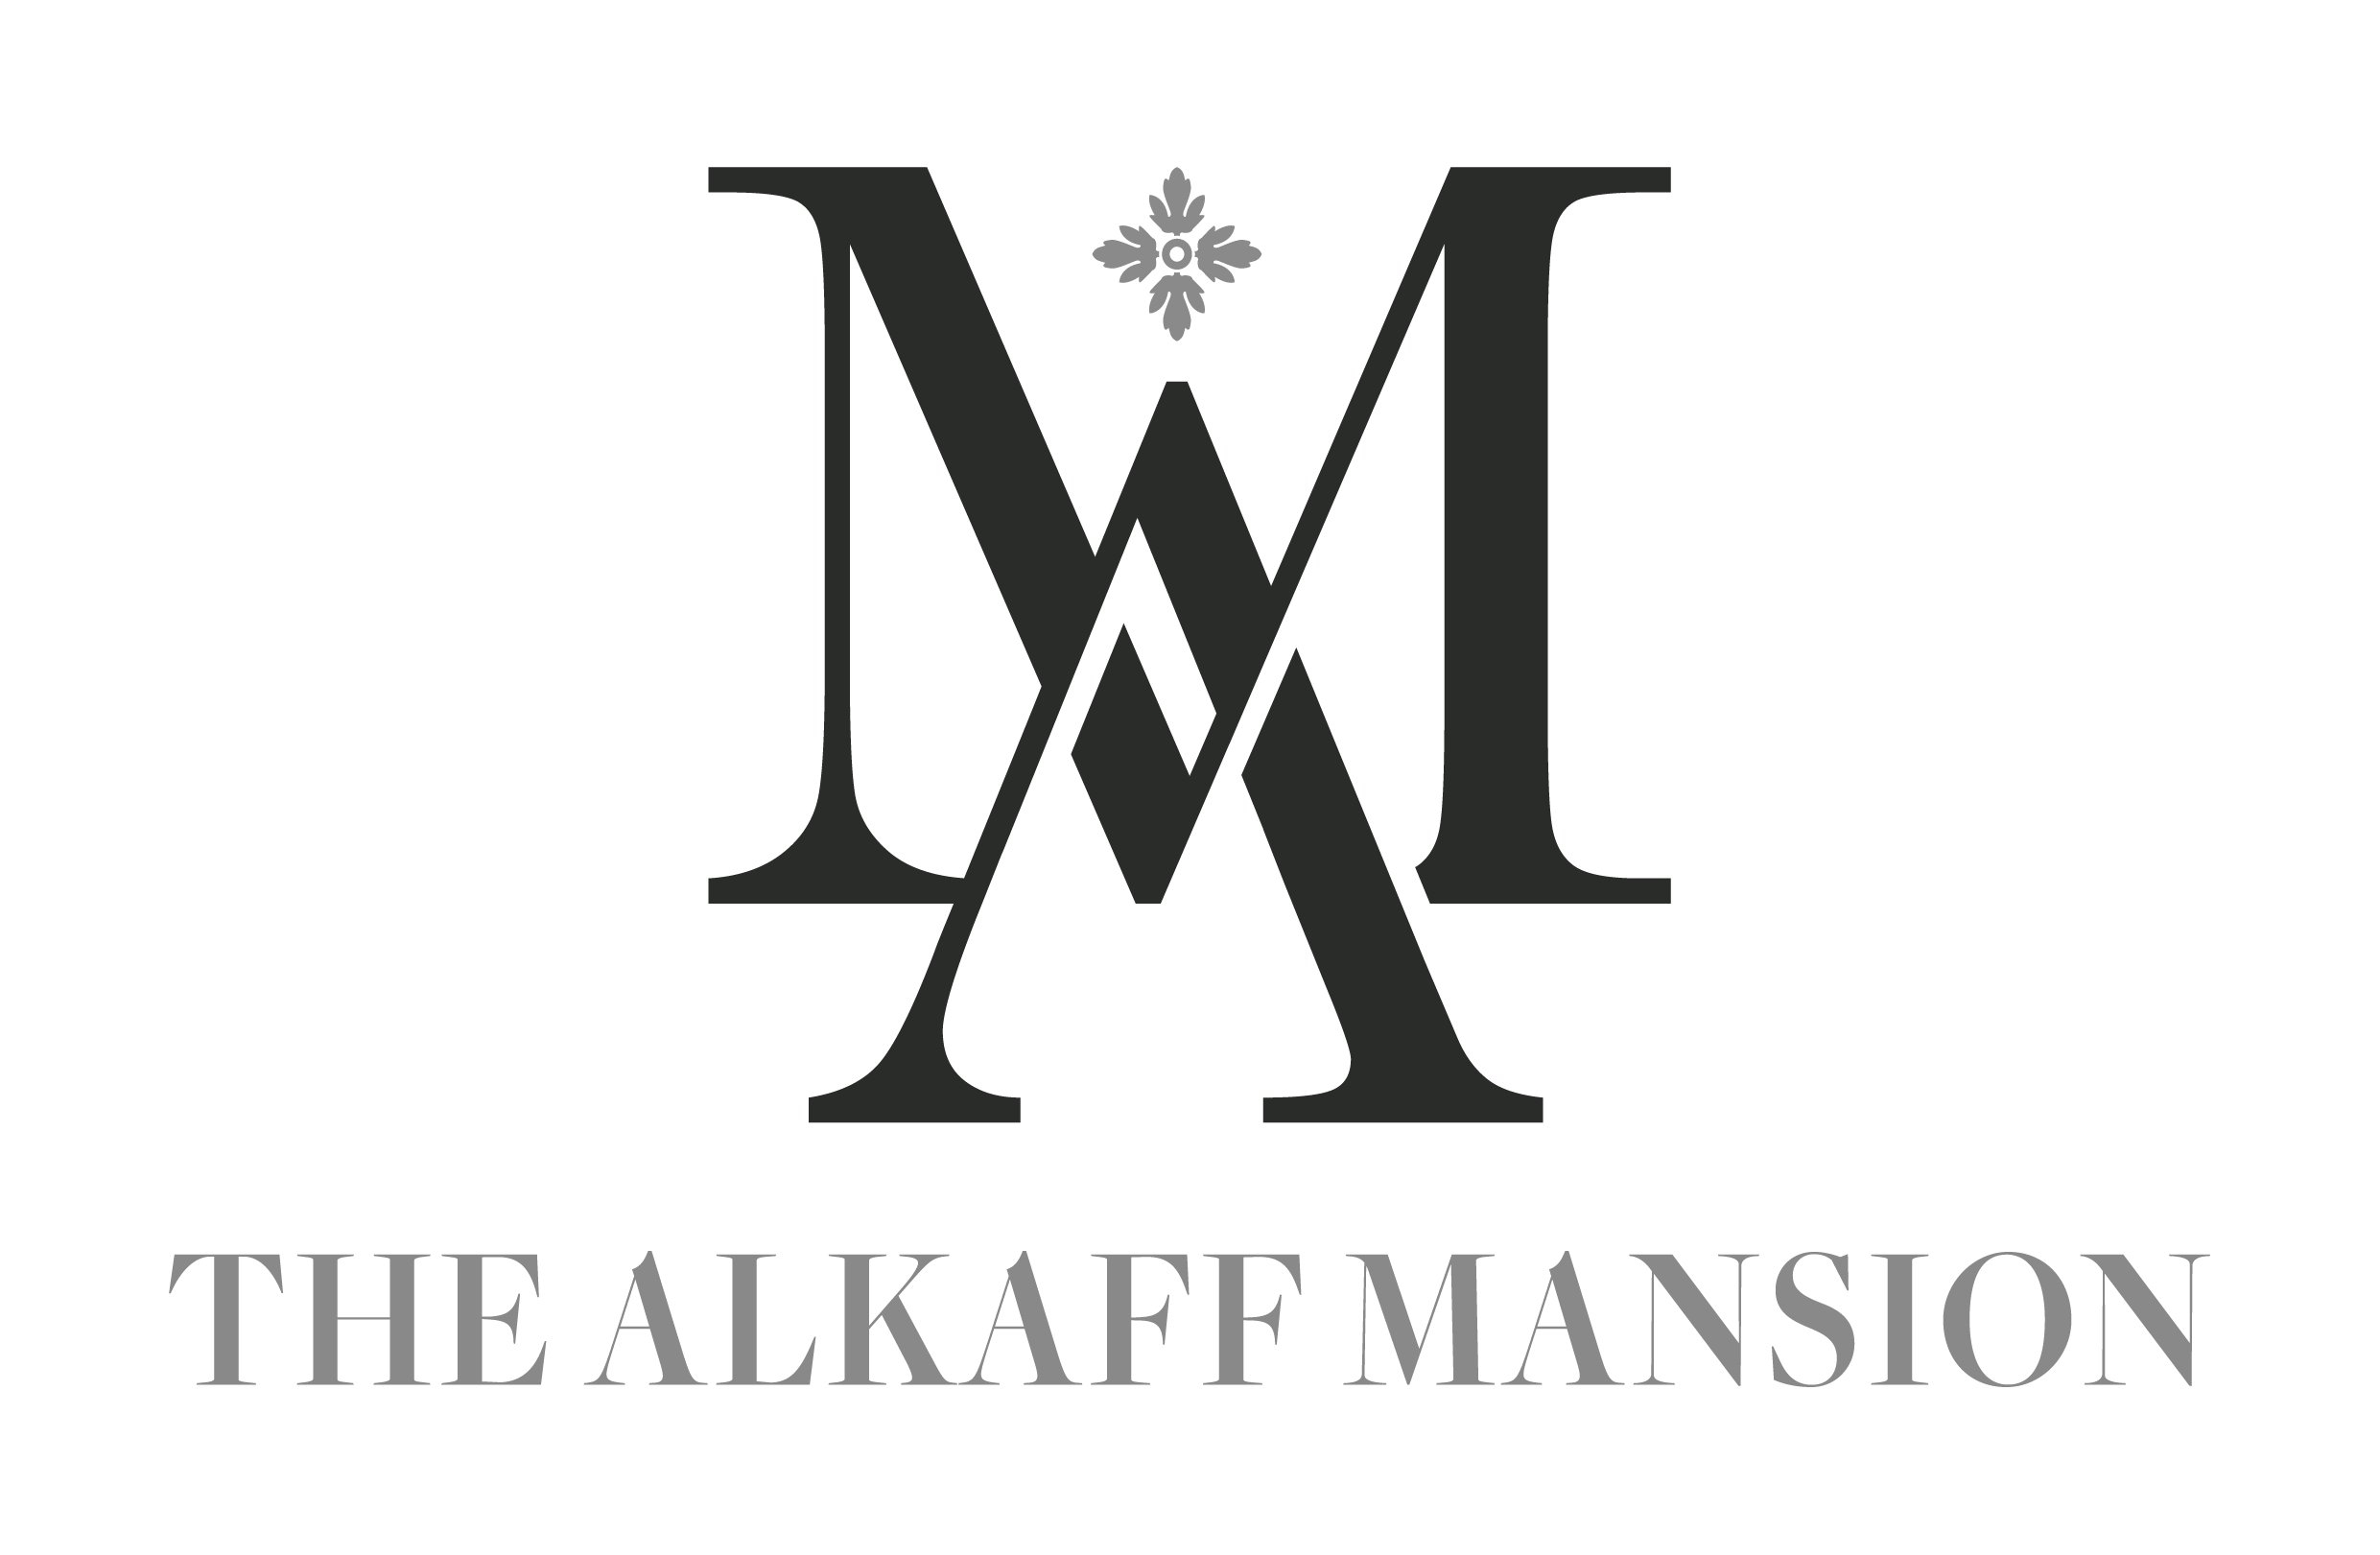 The Alkaff Mansion Full Colour